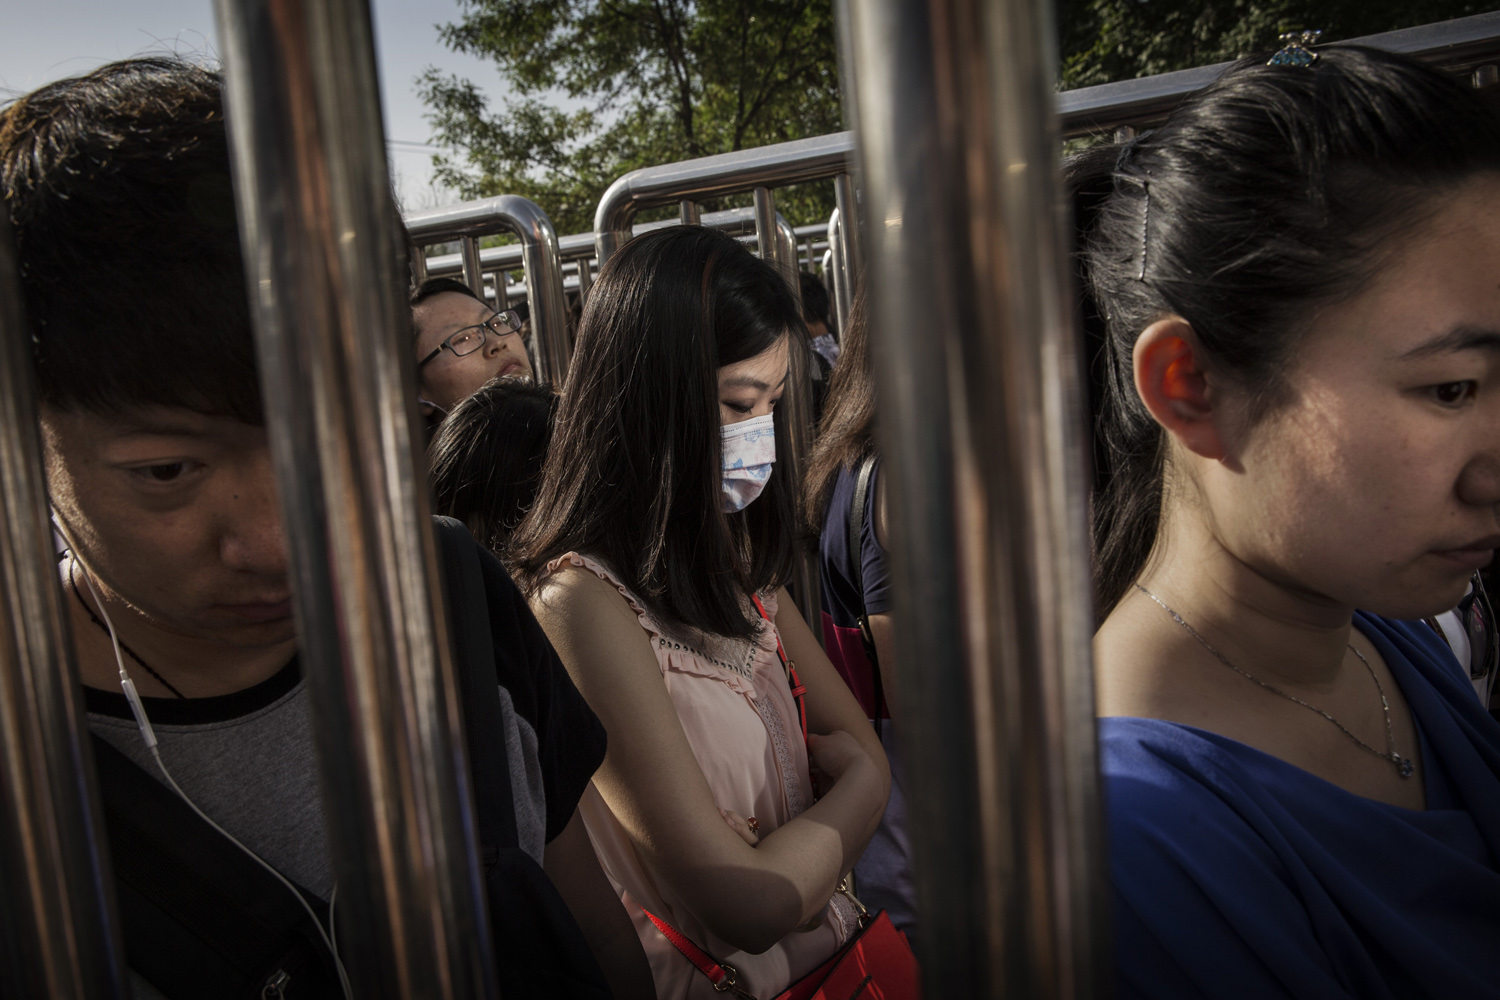 May 29, 2014. Chinese commuters line-up for a security check at a subway station in Beijing, China.